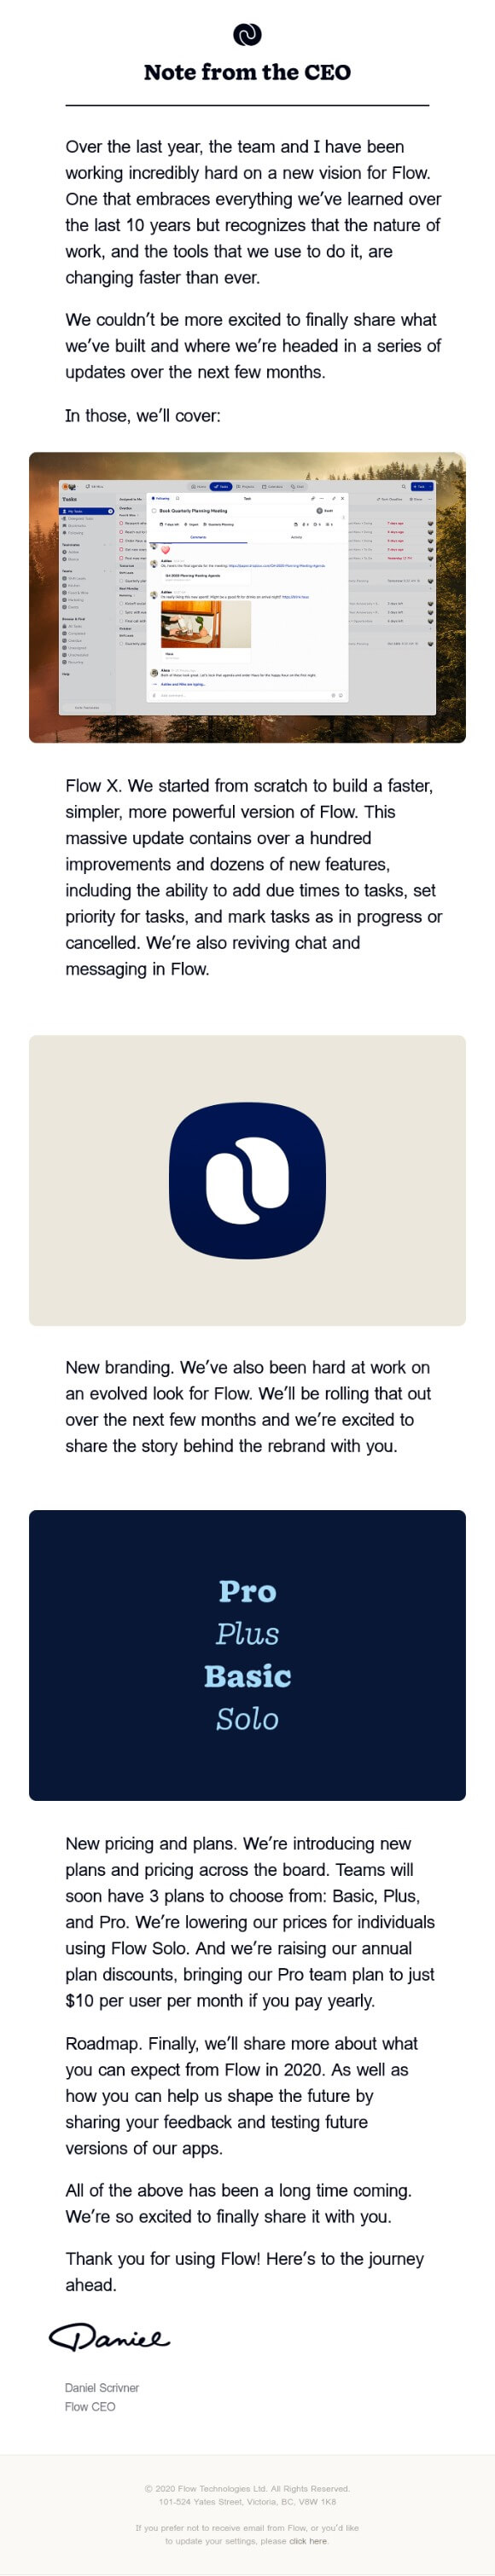 product-update-emails-flow